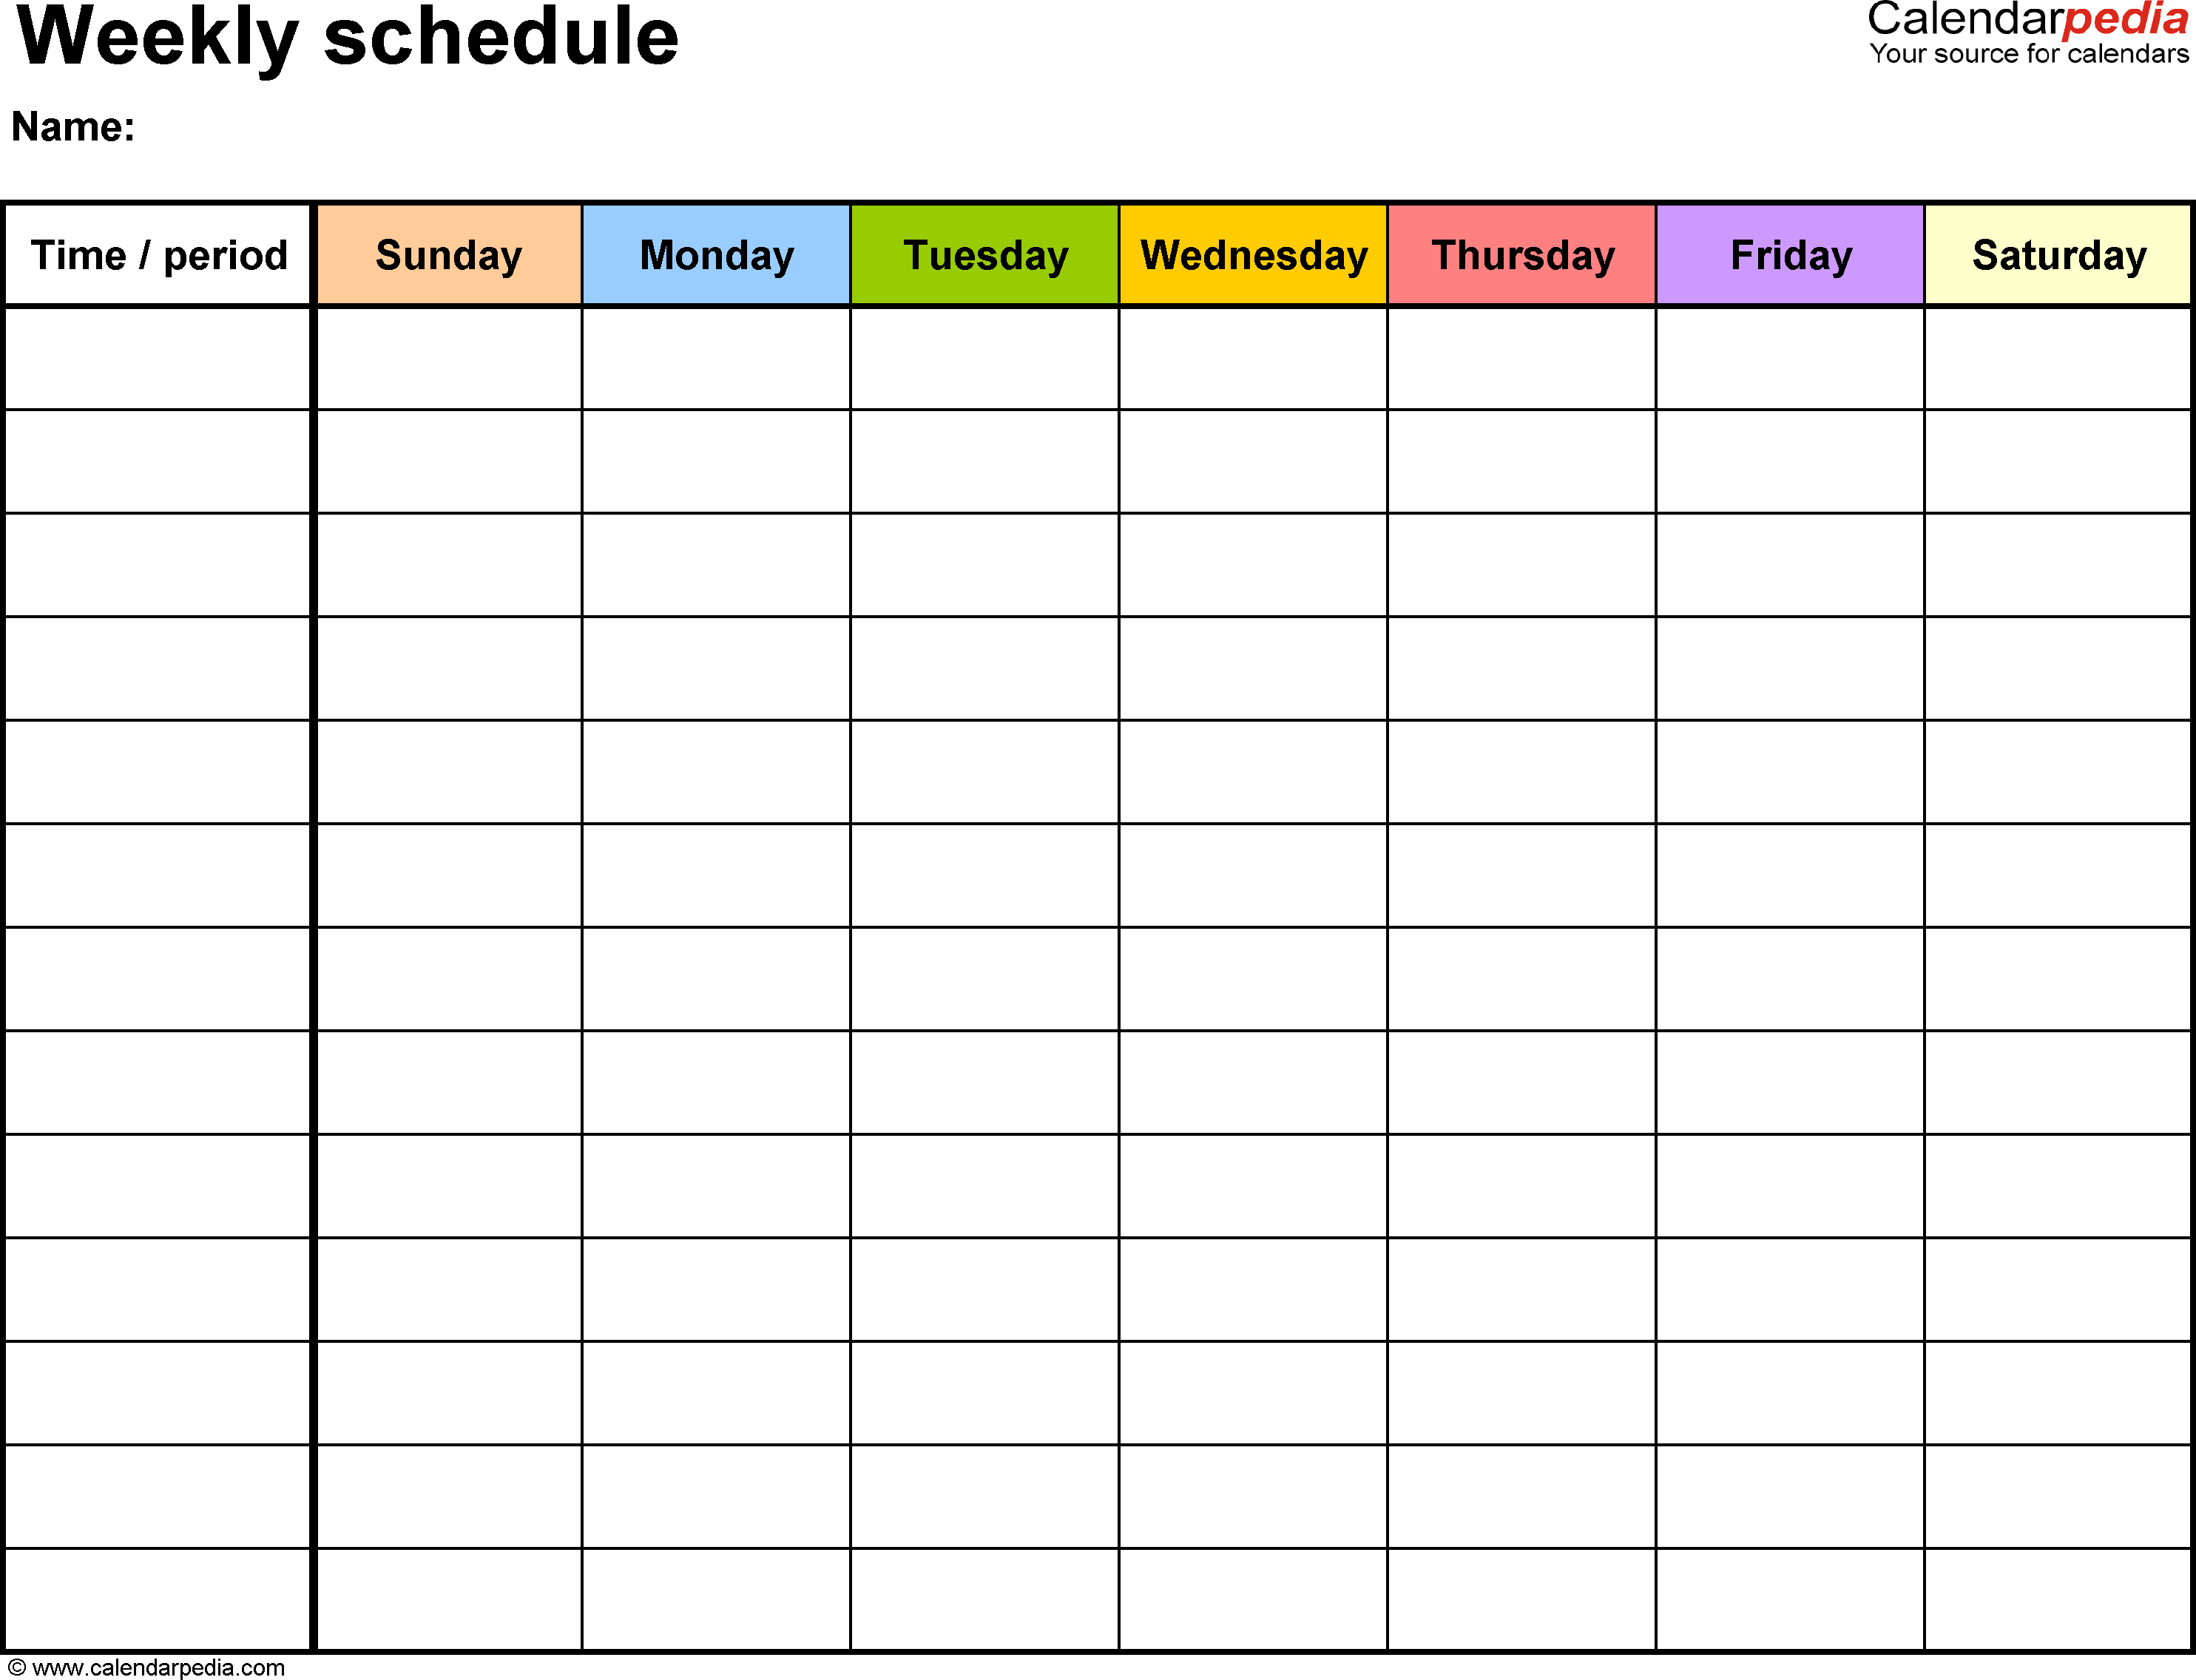 Free Weekly Schedule Templates For Excel - 18 Templates intended for 1 Week Blank Calendar Template